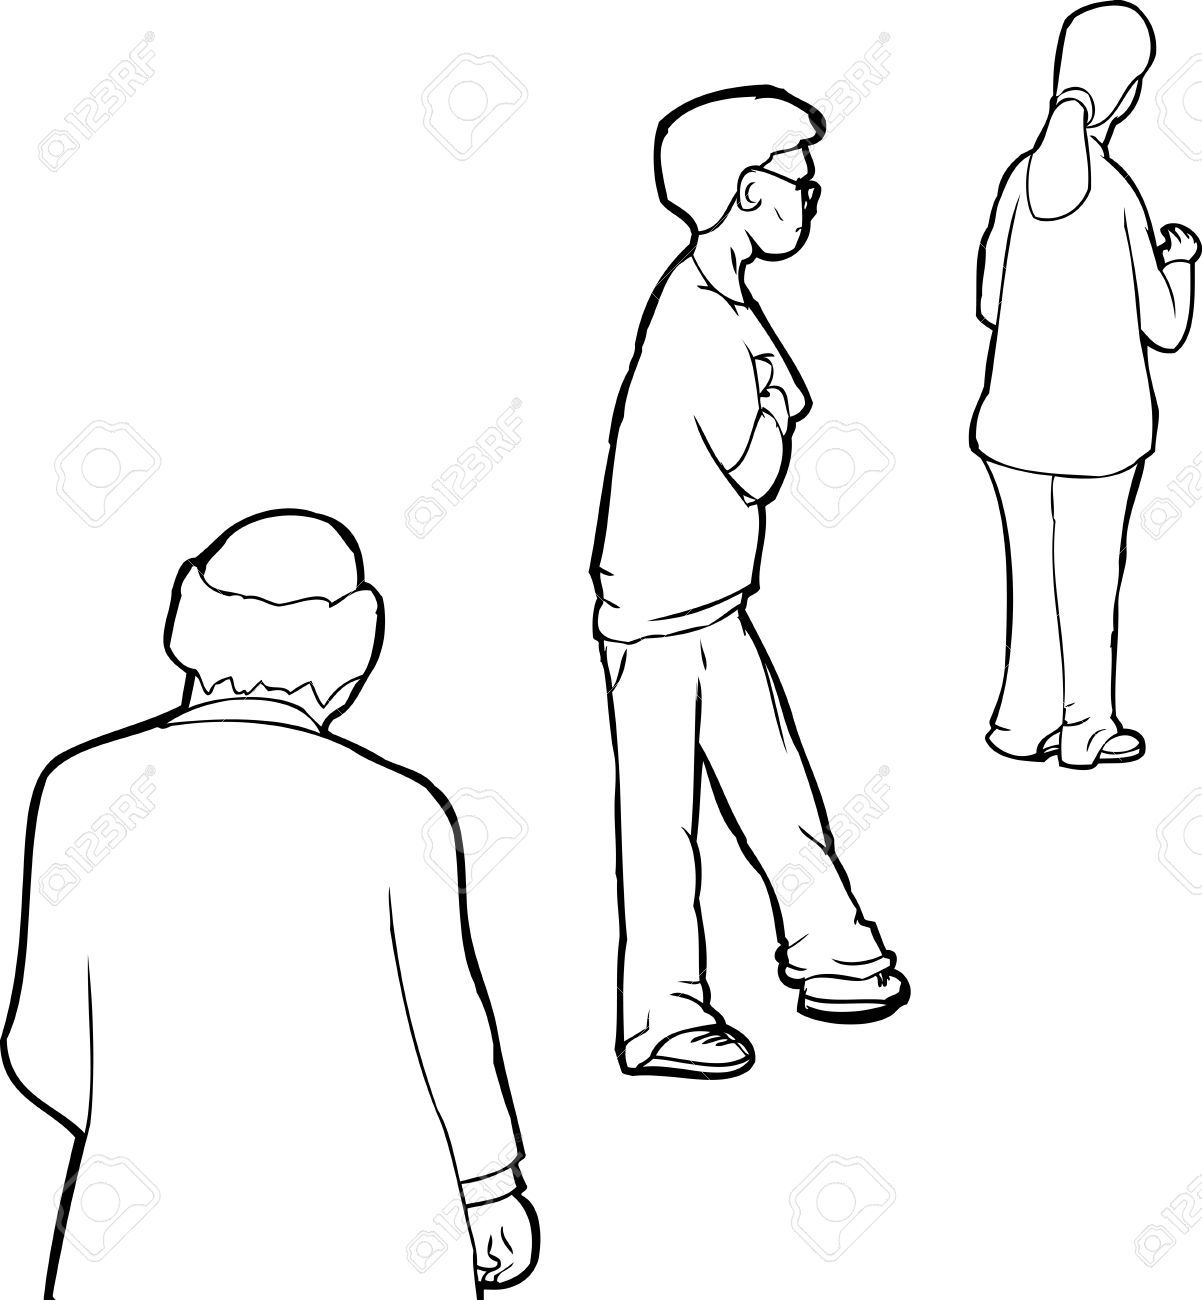 Black Cartoon People Outline Wiring Diagrams Transistorized Geiger Counter Circuit Diagram Tradeoficcom Of Three Waiting In Line Royalty Free Rh 123rf Com Drawings